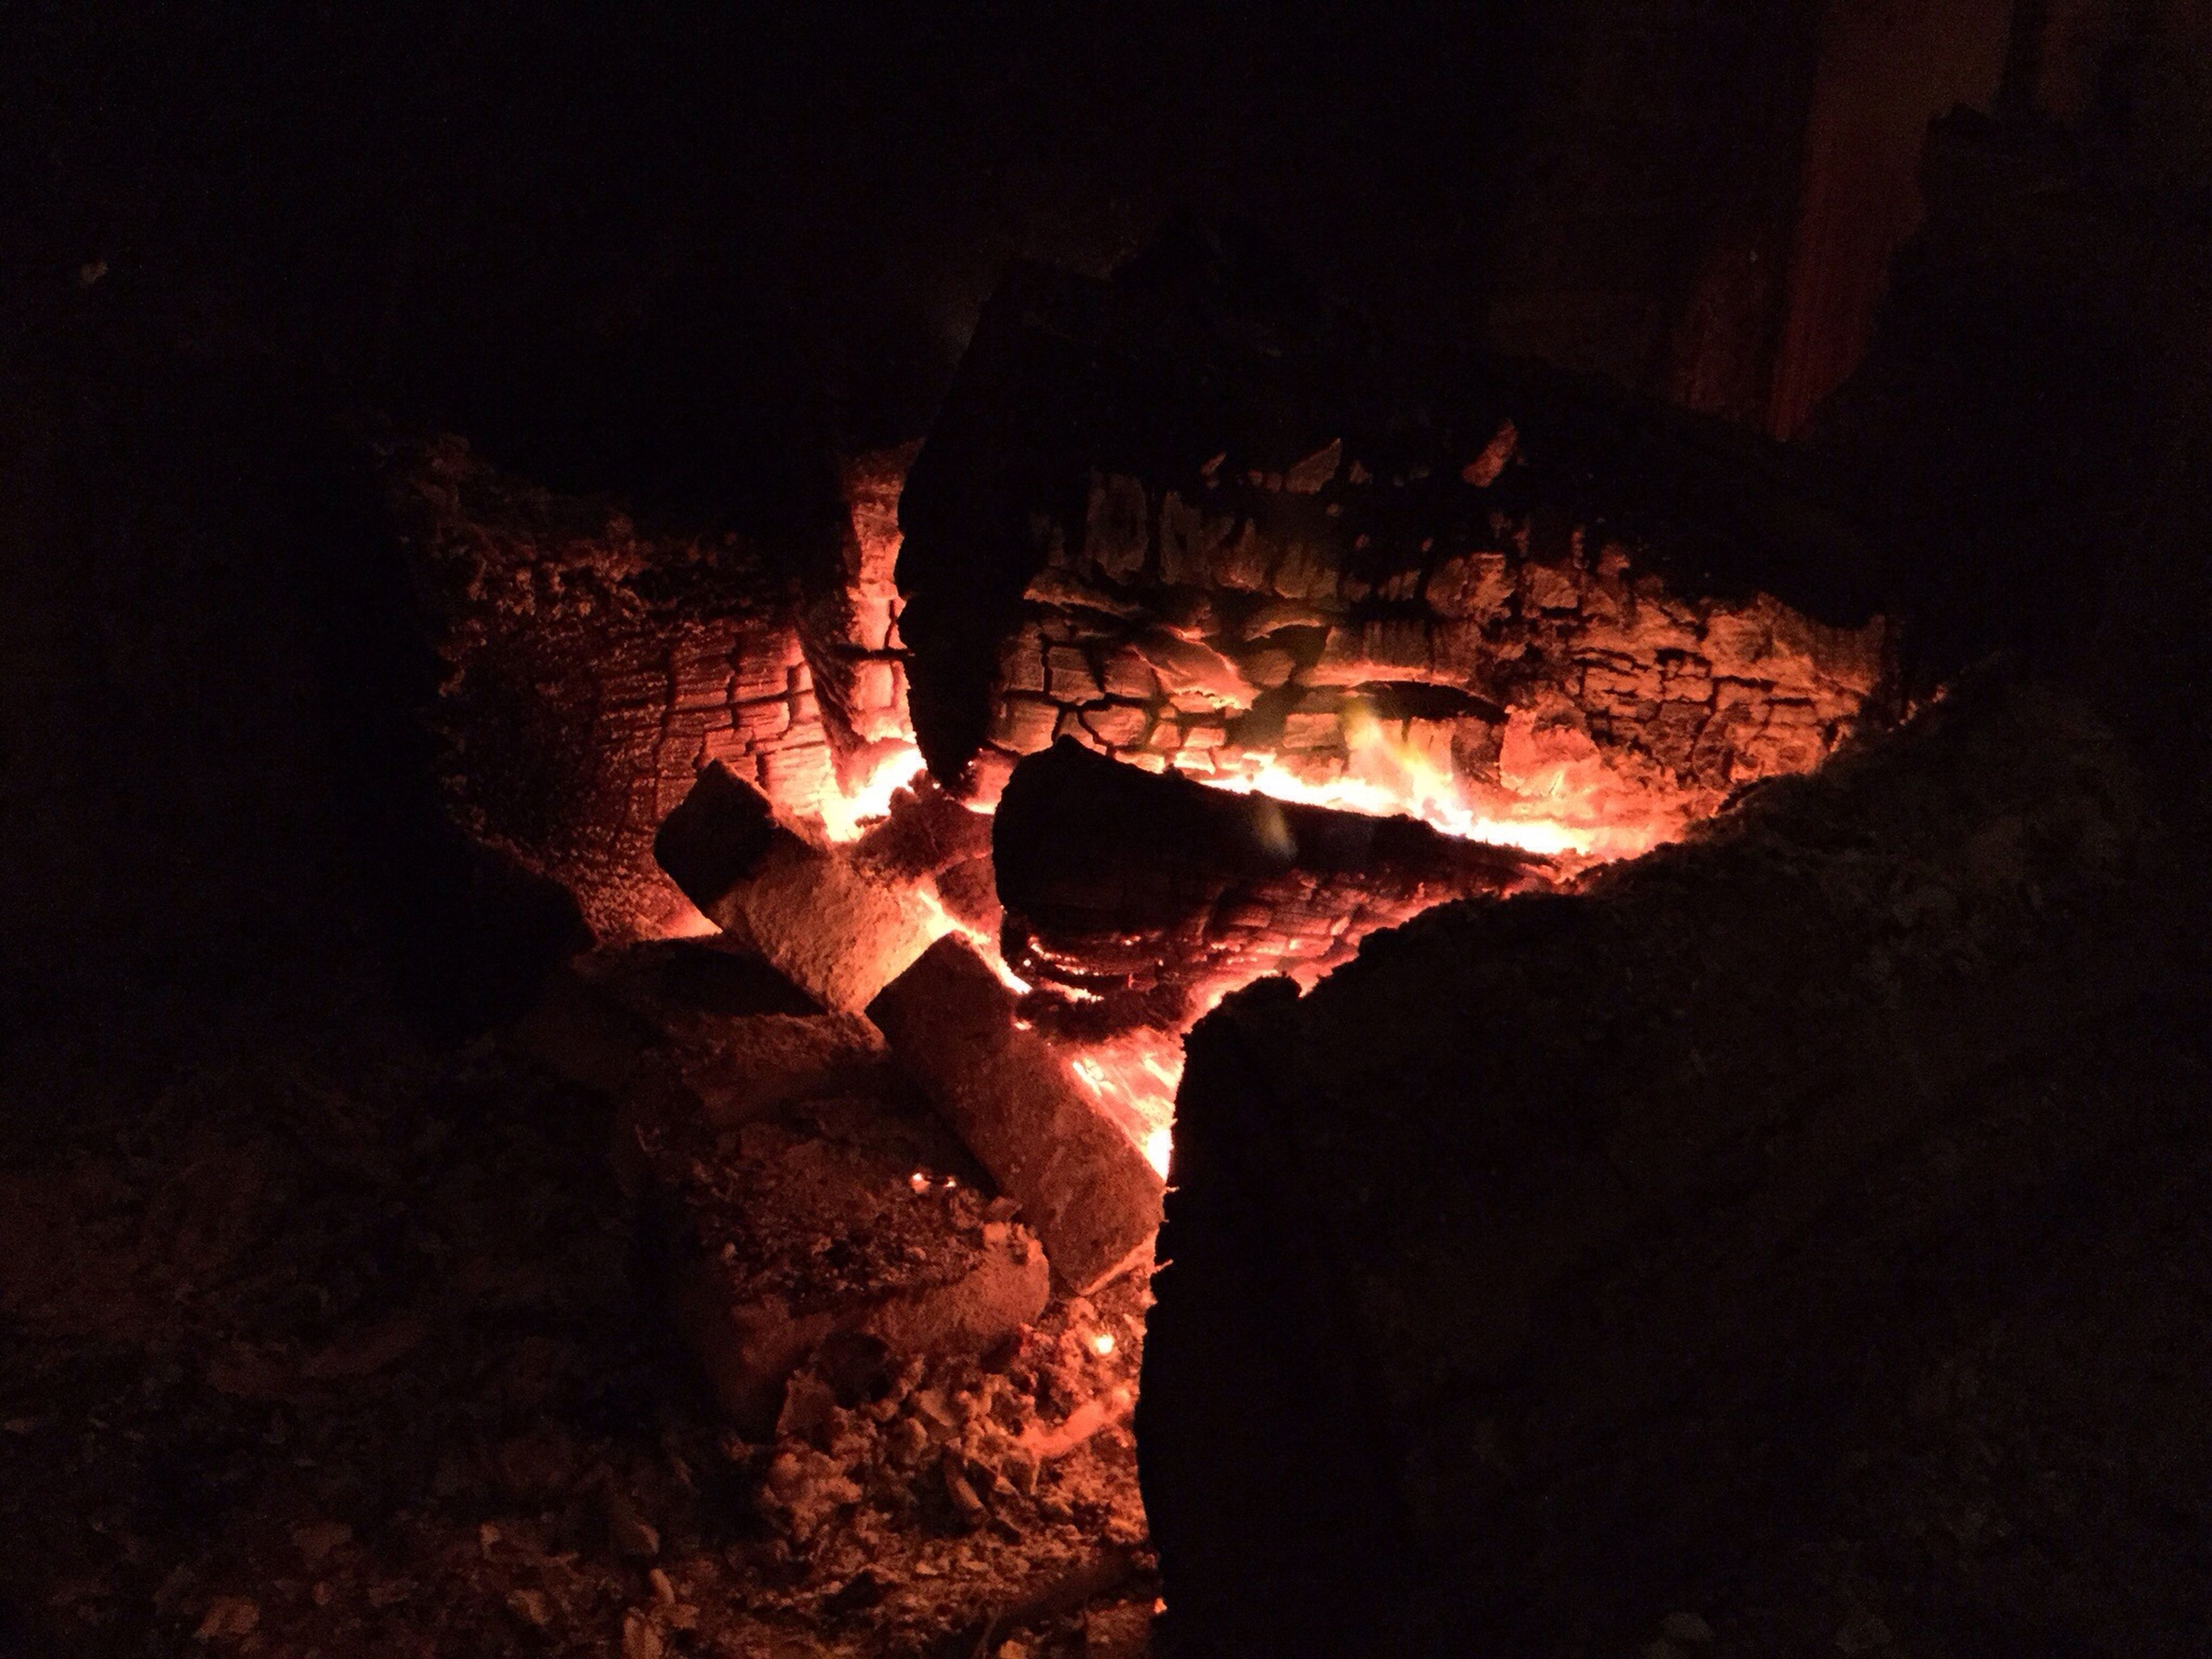 night, rock - object, rock formation, textured, cave, dark, geology, indoors, close-up, rough, pattern, nature, no people, natural pattern, eroded, heat - temperature, destruction, low angle view, firewood